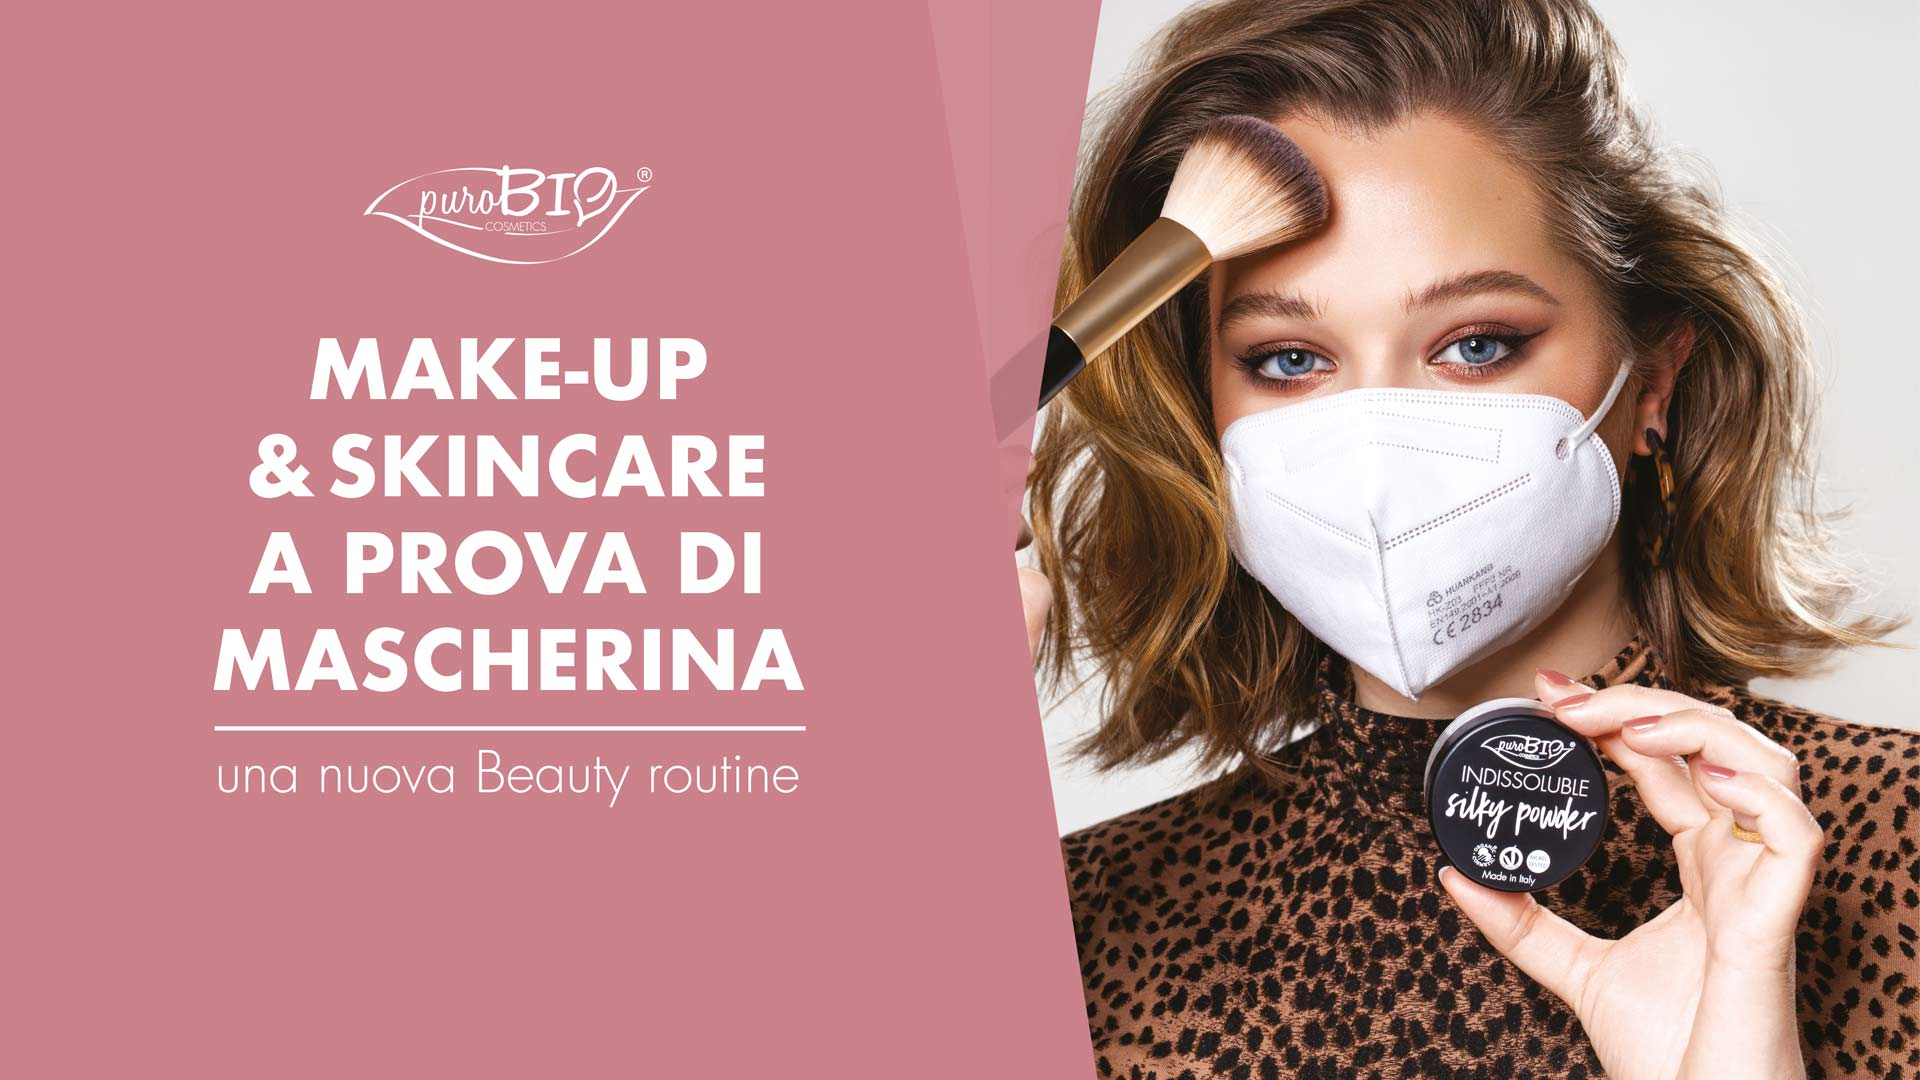 Make-up-e-Skincare-a-prova-di-mascherina-una-nuova-Beauty-routine